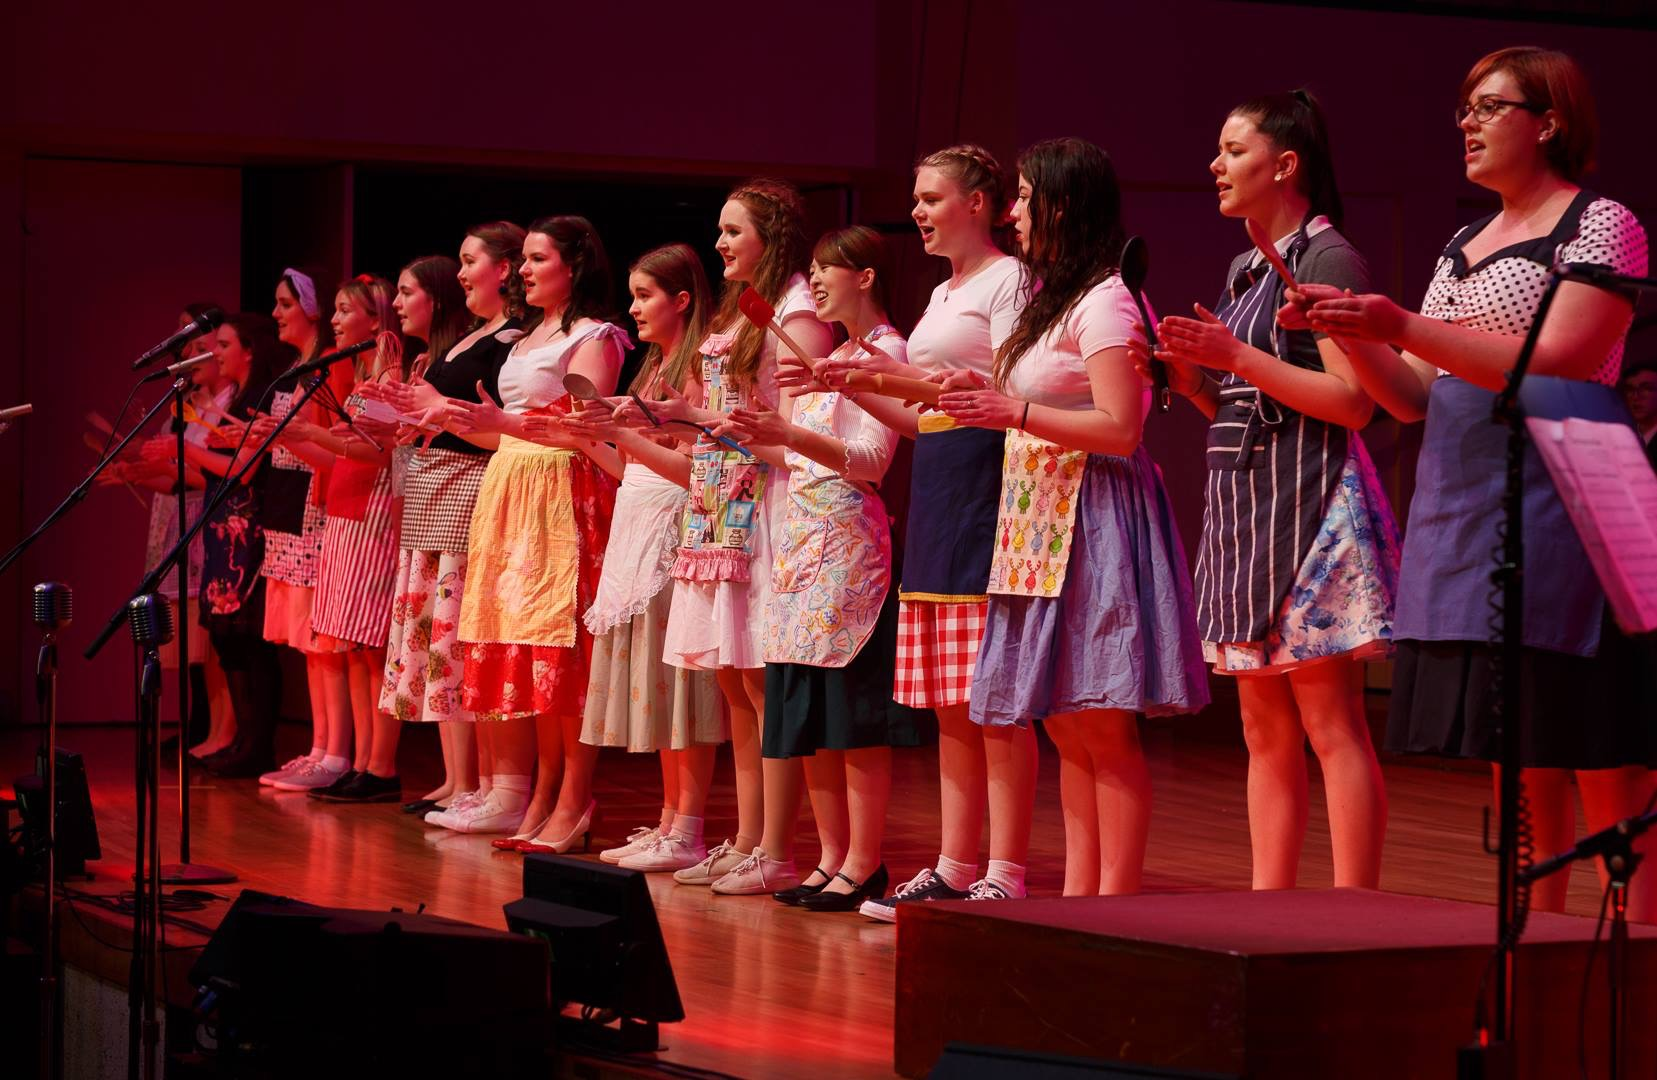 VoiceWorks sing What Baking Can Do from the musical Waitress